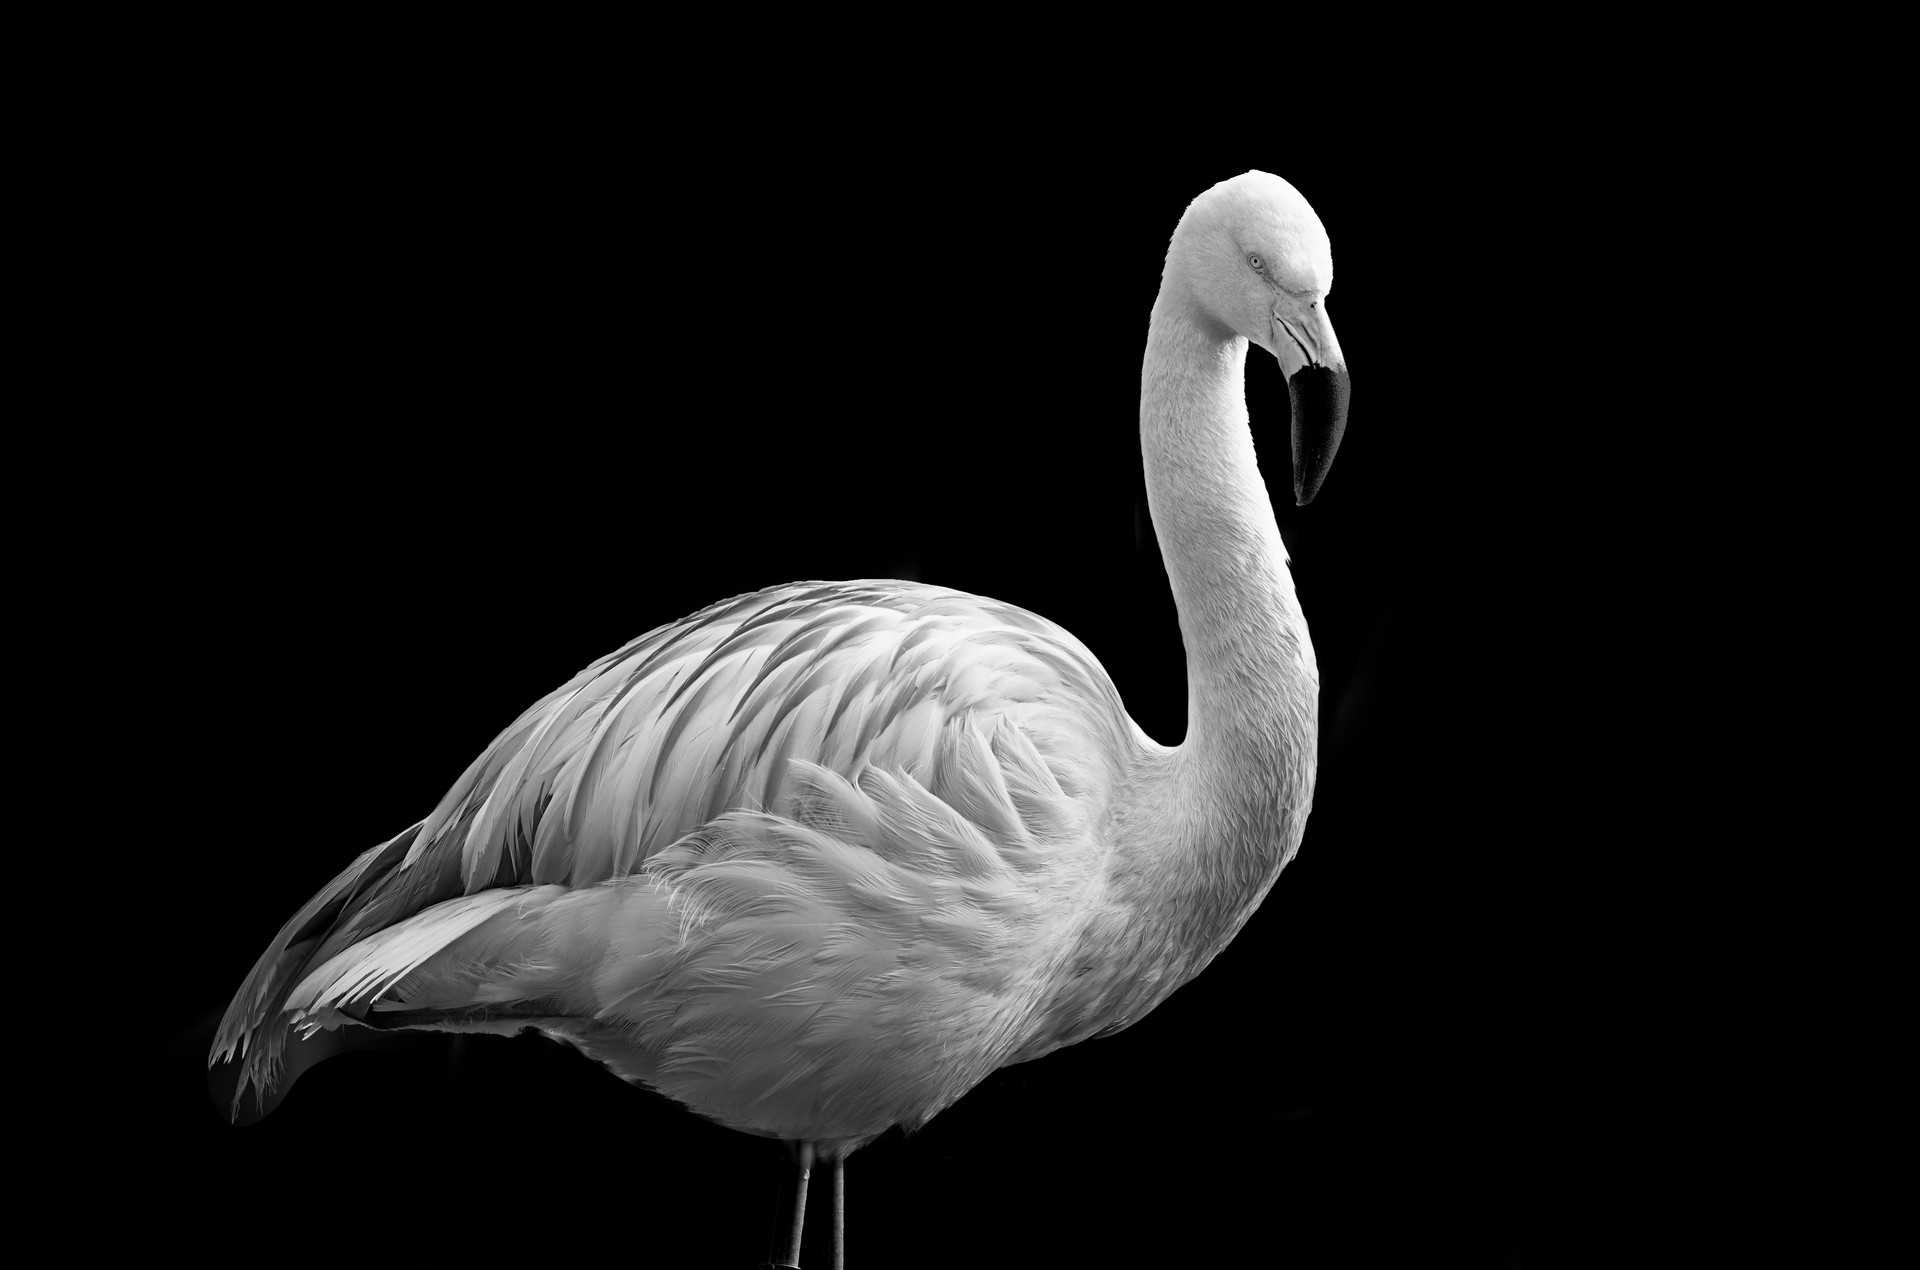 MONO - Flamingo by Stephen McComb (11 marks)